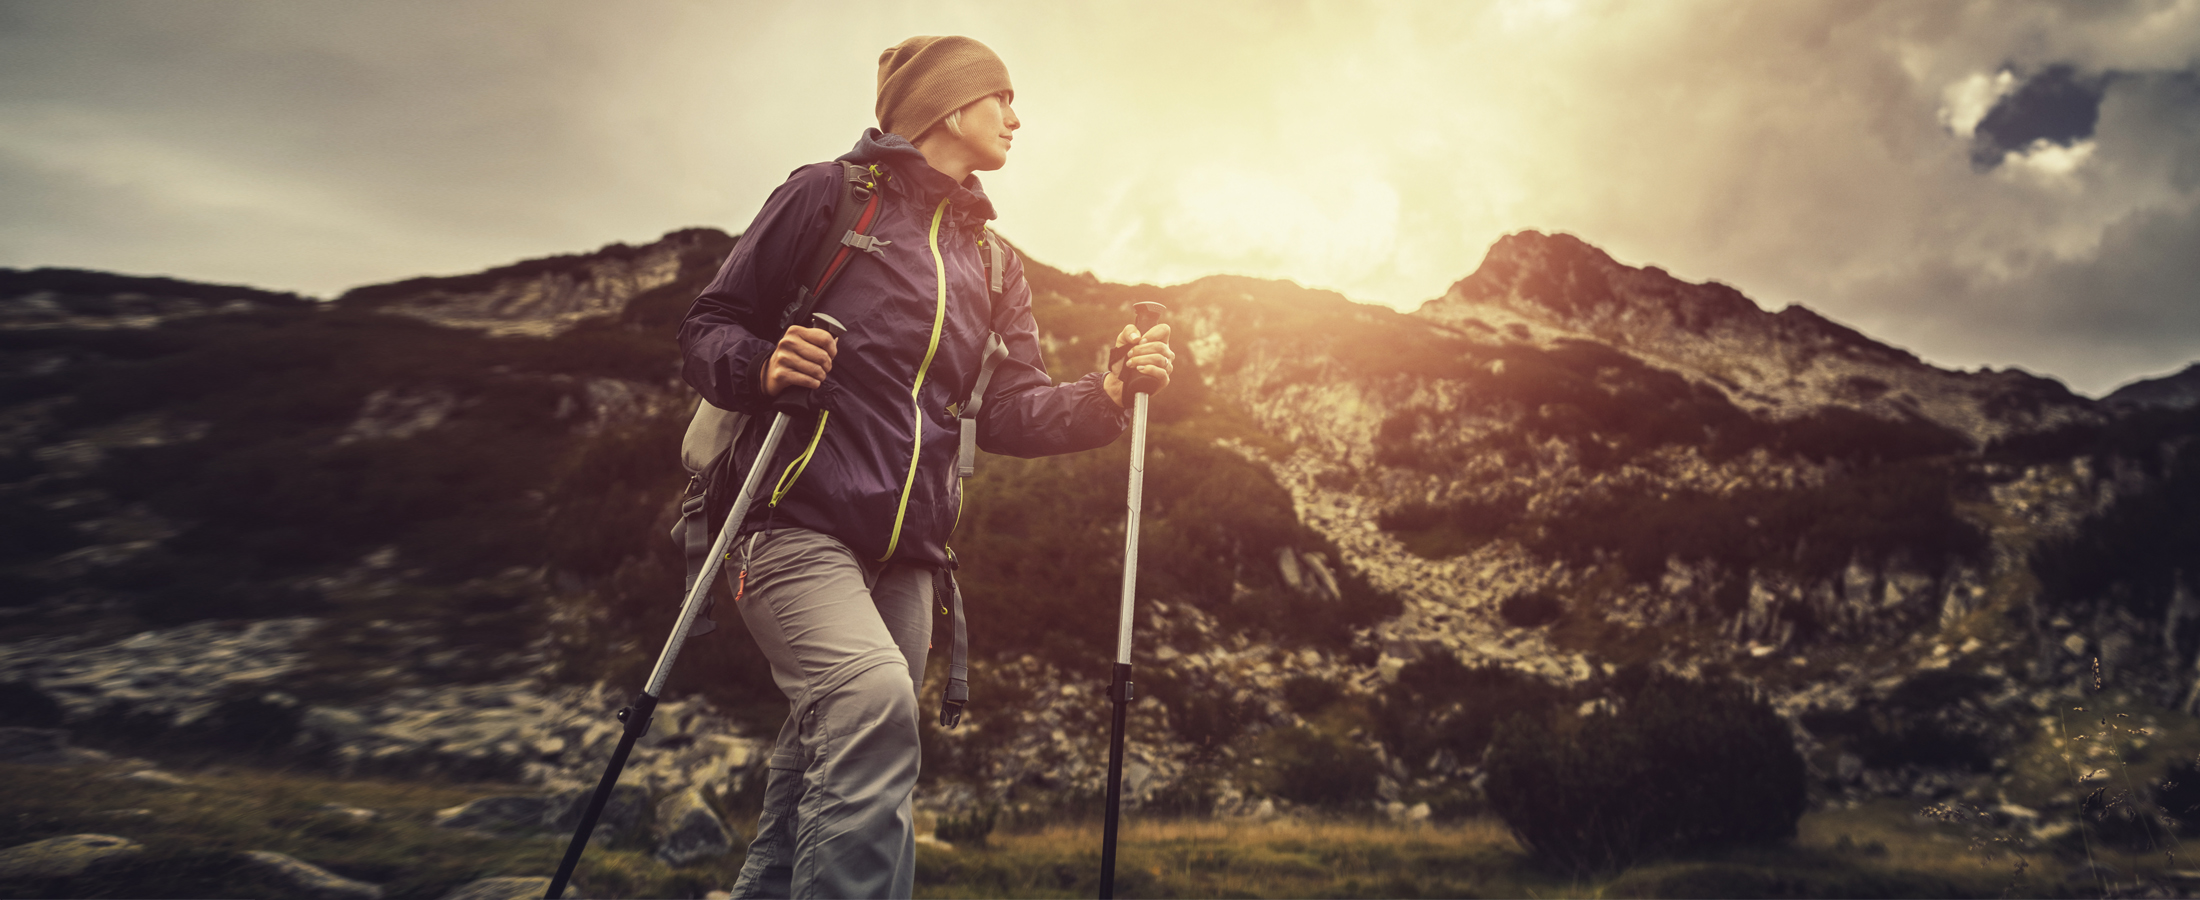 Trekking Poles and Body Structure